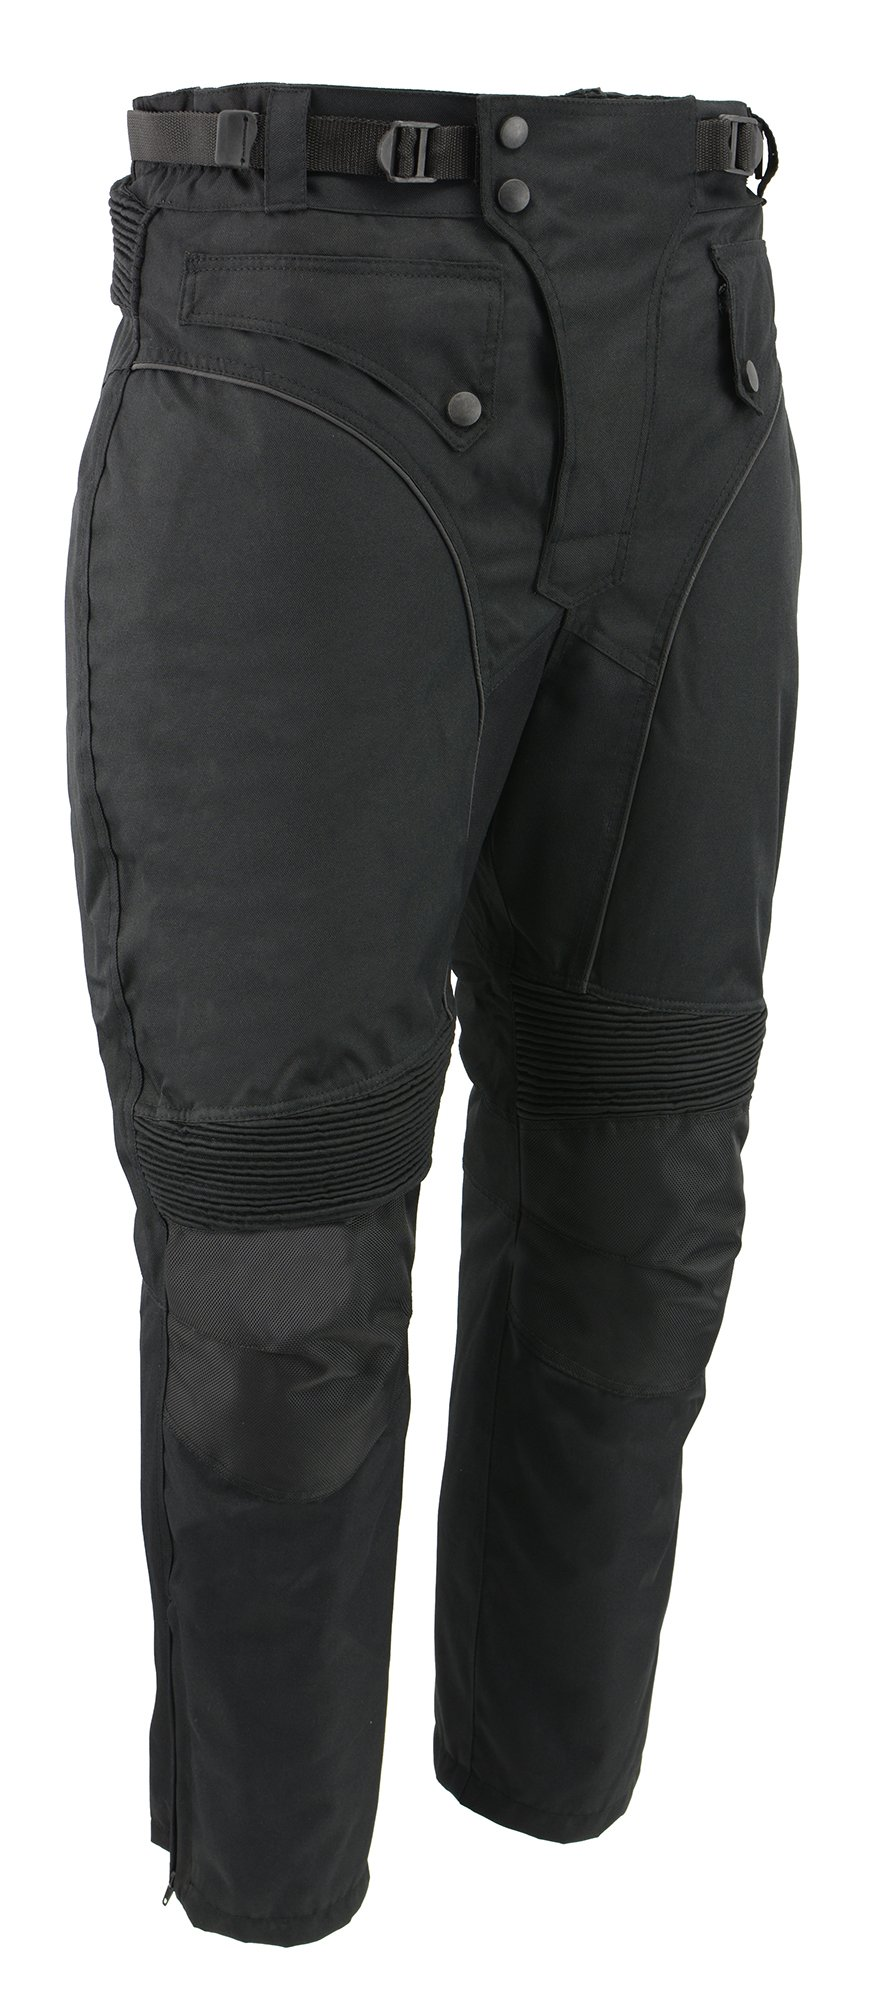 M-BOSS MOTORCYCLE APPAREL-BOS15572-BLACK-Men's waterproof and zip-out insulated ce armor motorcycle pants.-BLACK-MEDIUM